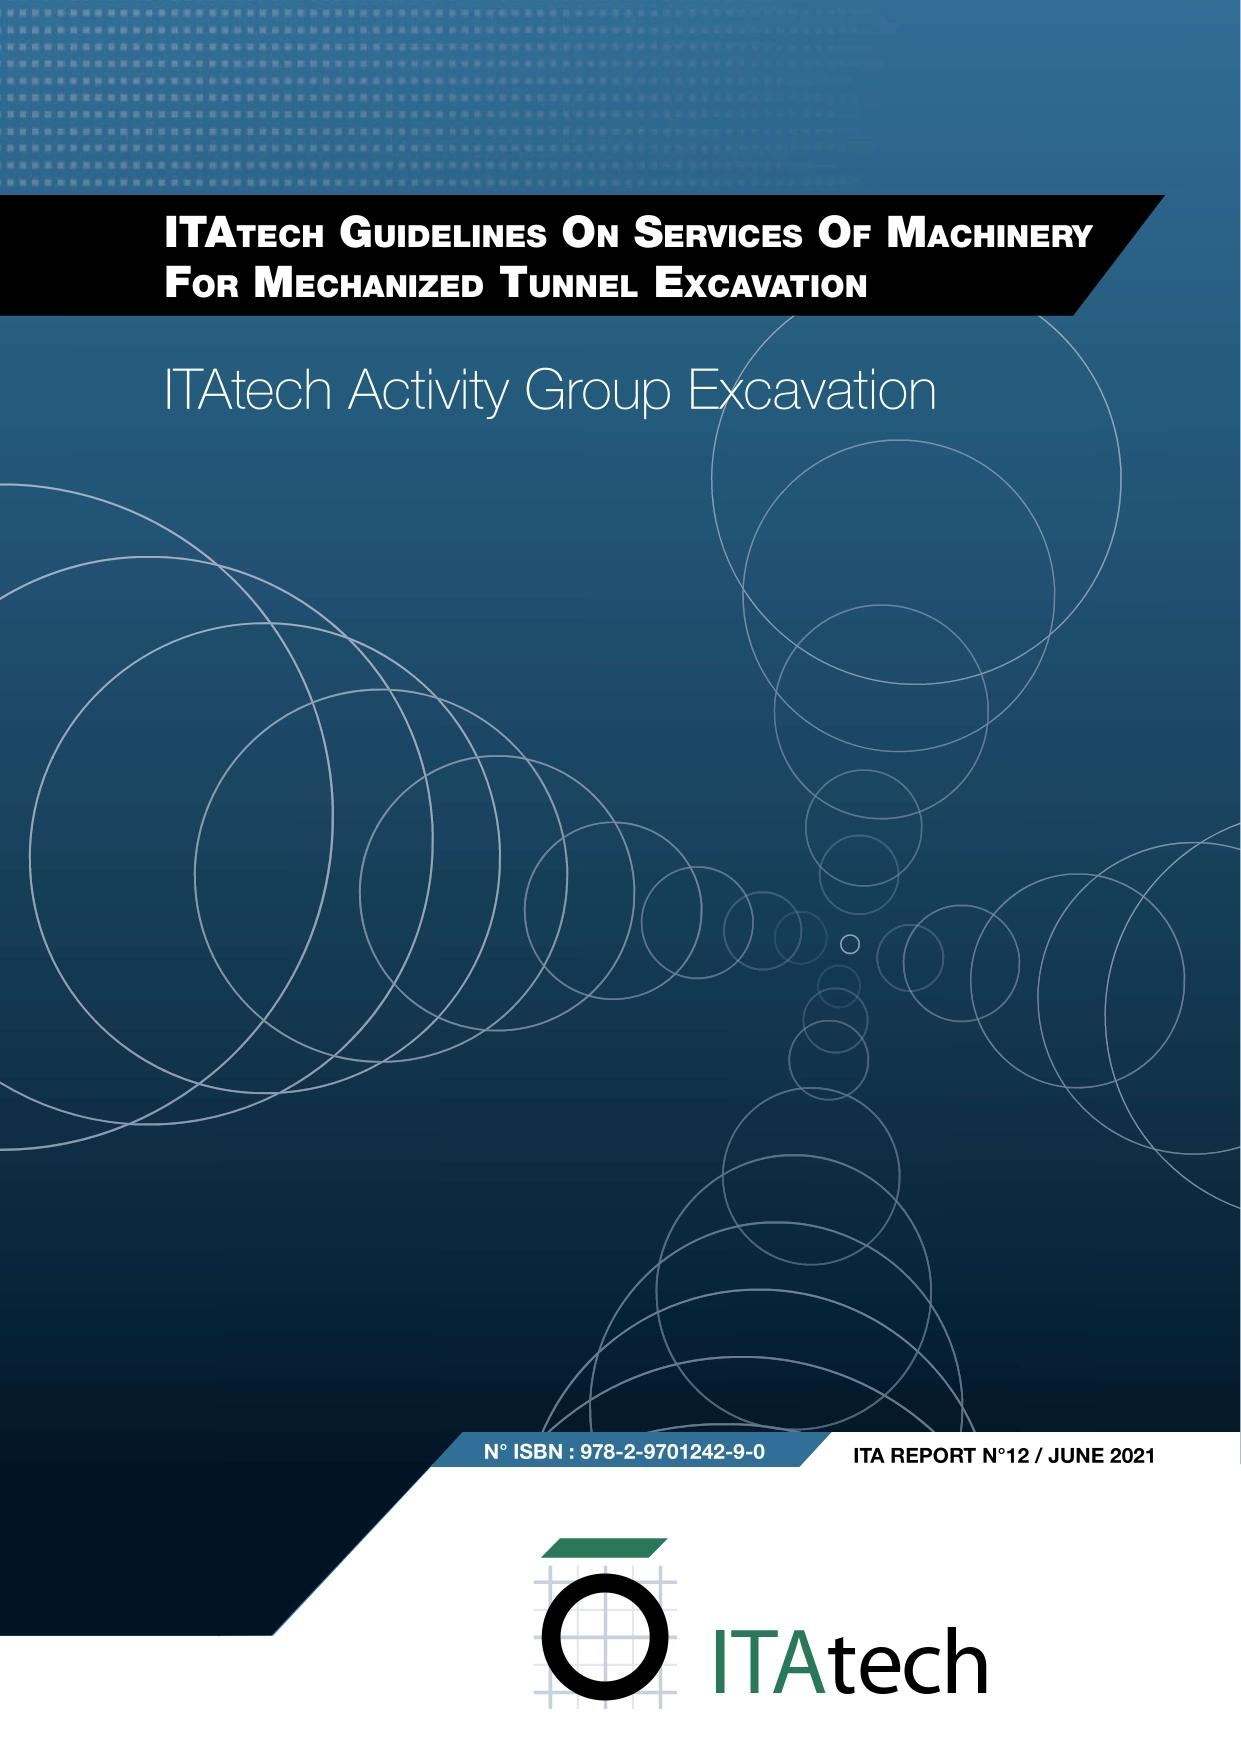 Guidelines On Services Of Machinery for Mechanized Tunnel Excavation